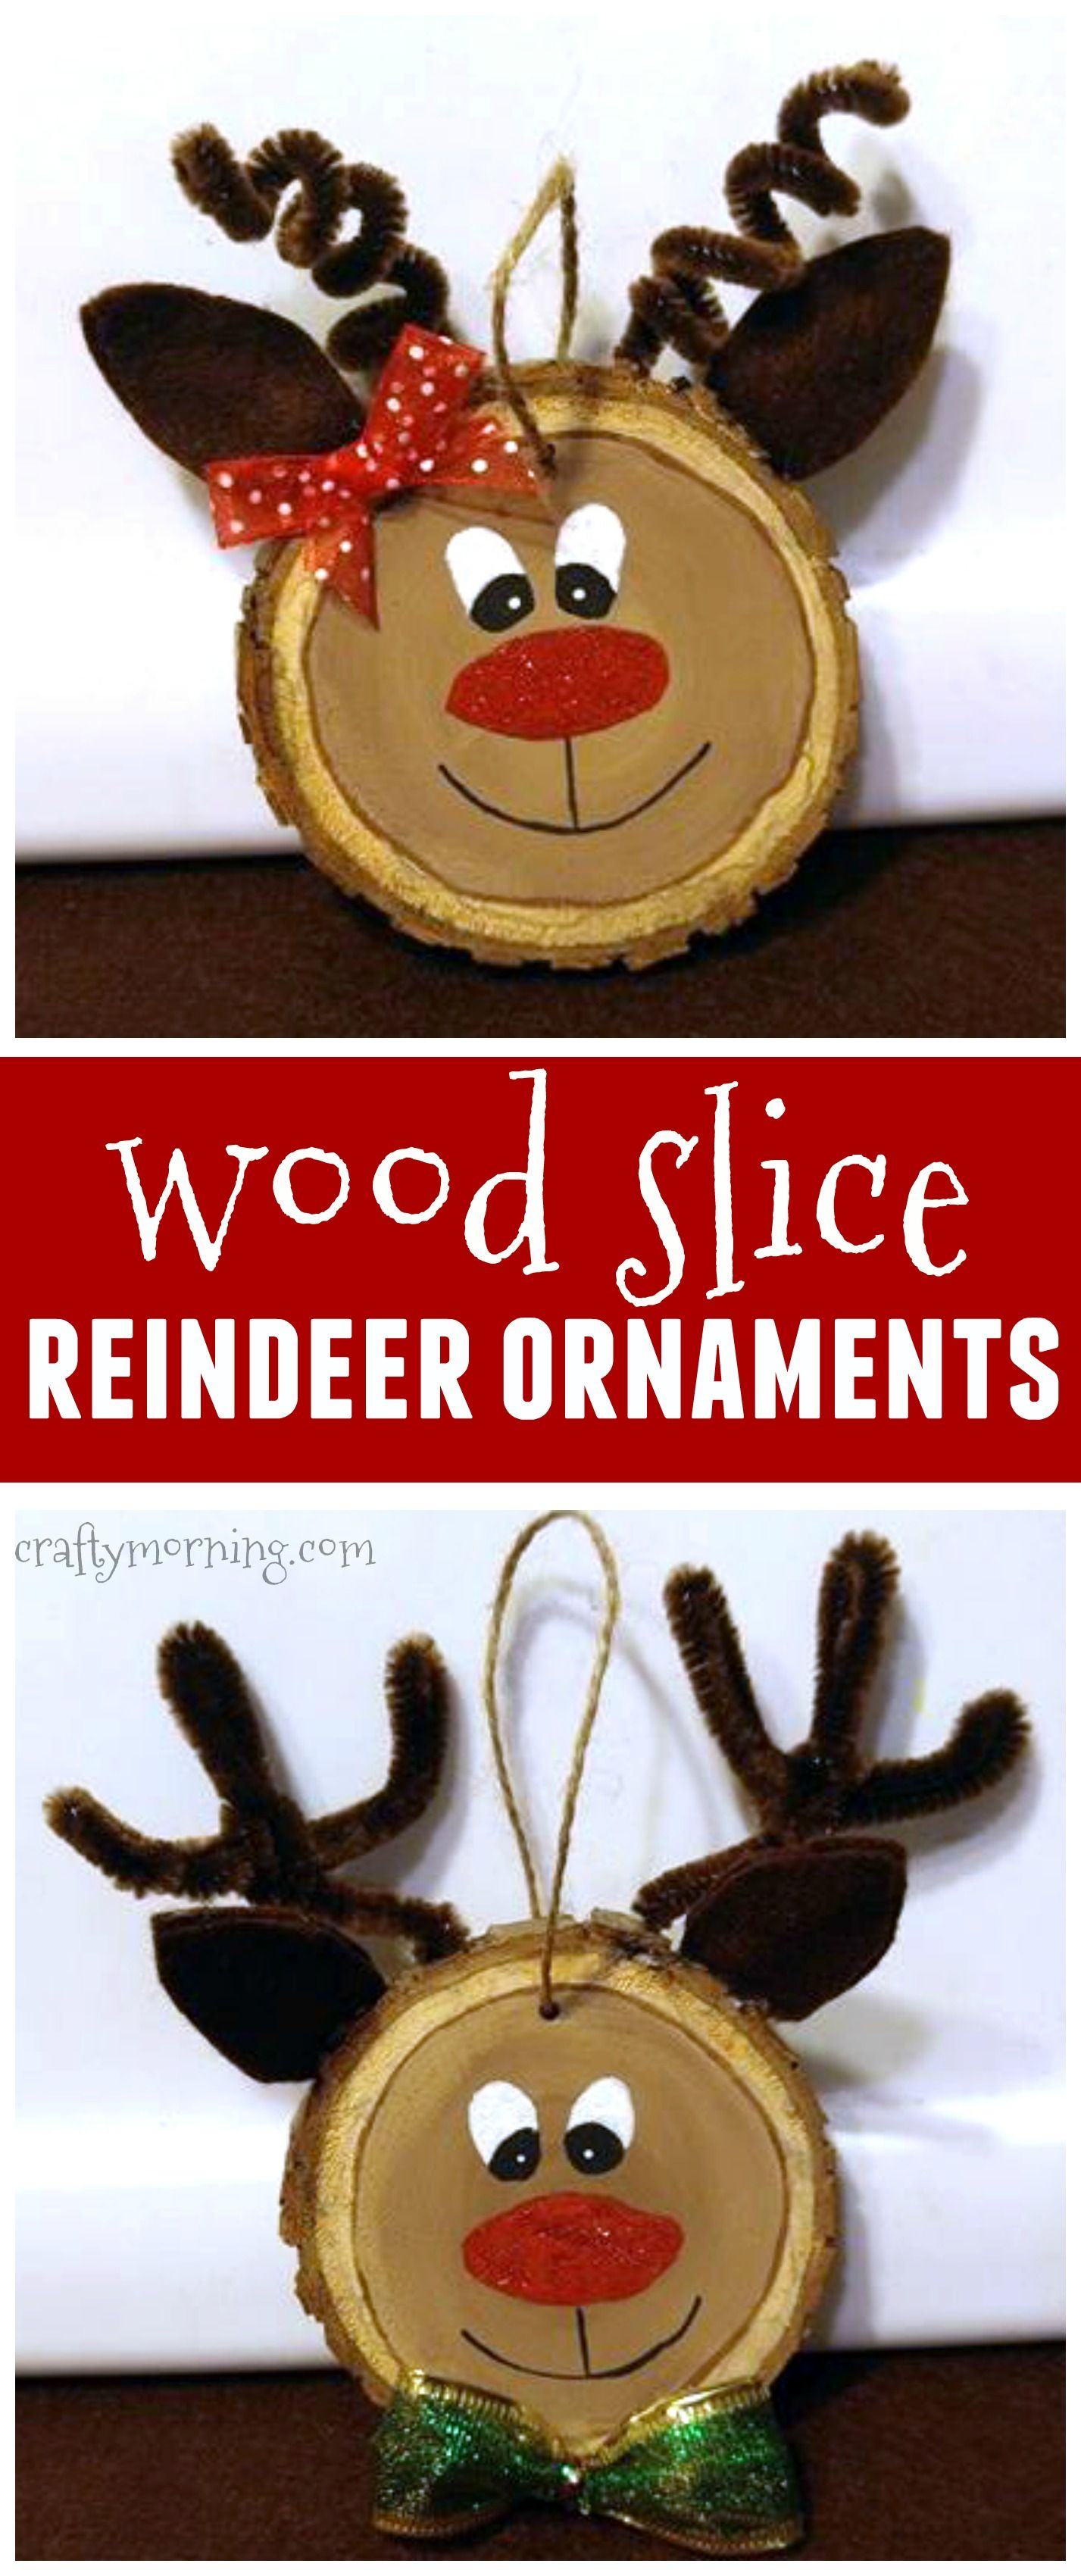 Wood Slice Reindeer Ornaments For A Kids Christmas Craft These Would Make Cute Gifts Too Kids Christmas Christmas Crafts Christmas Crafts For Kids